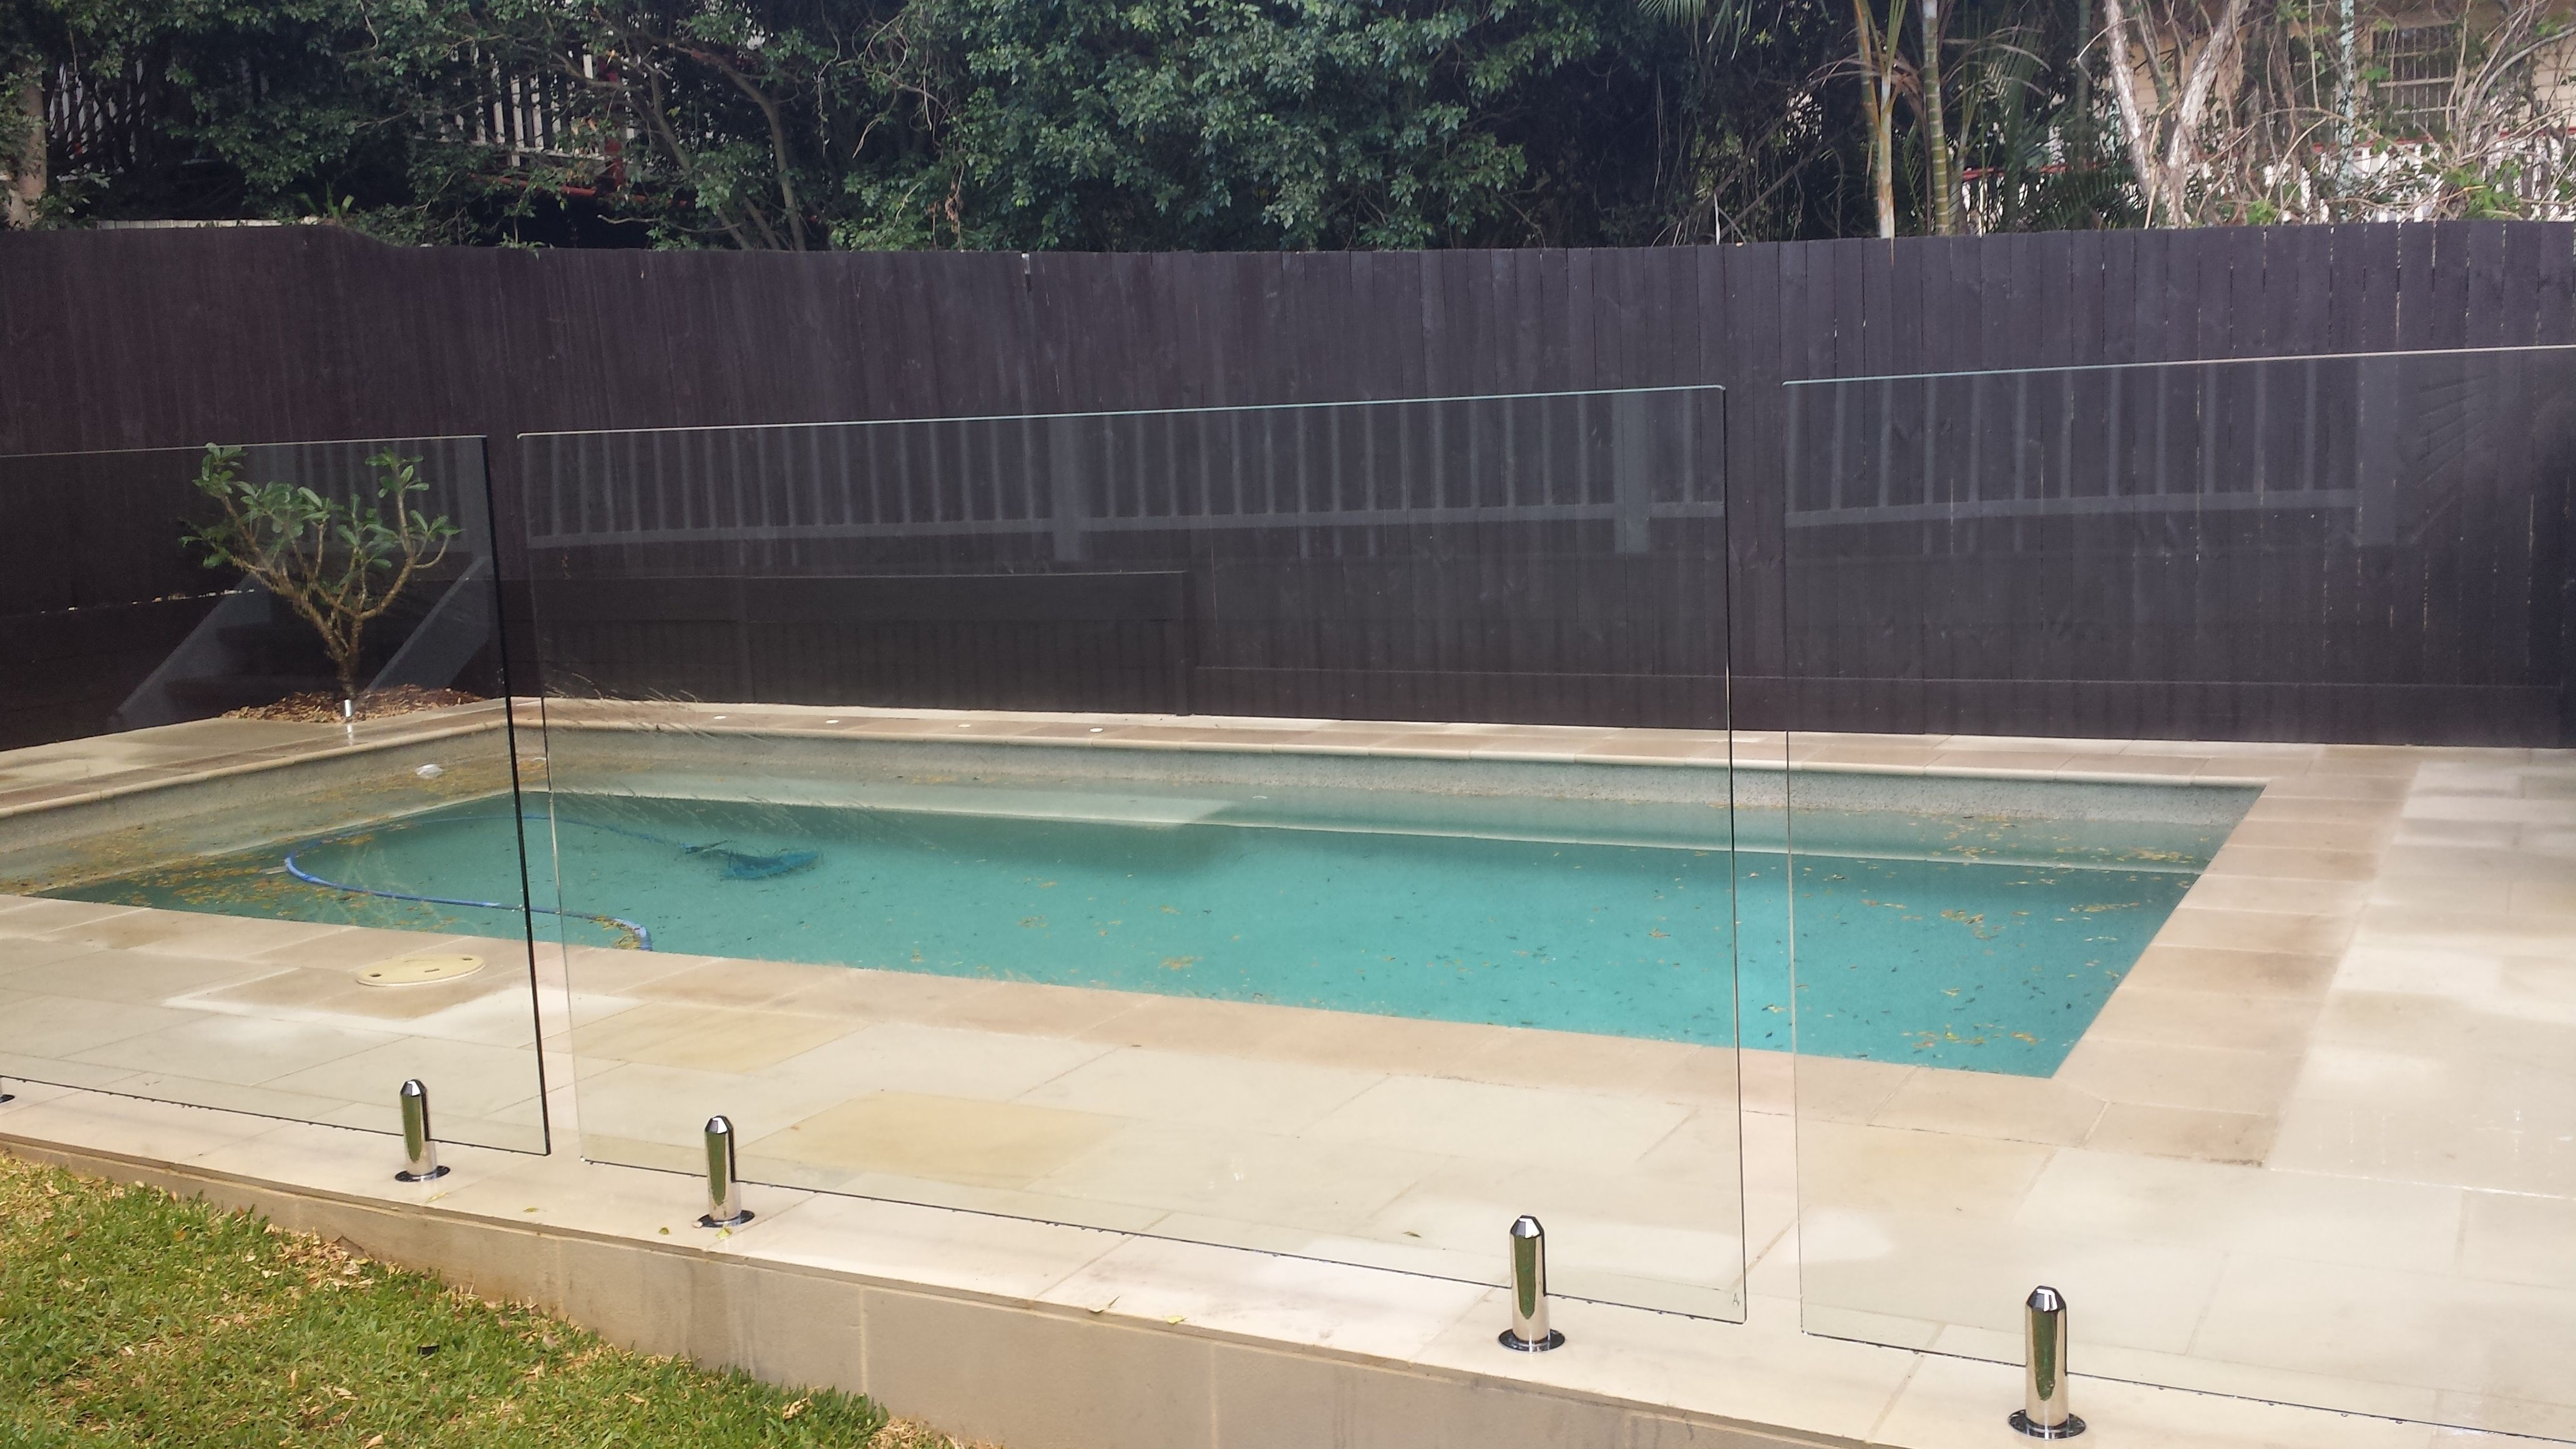 Pool Coping Tiles Brisbane | Tile Design Ideas